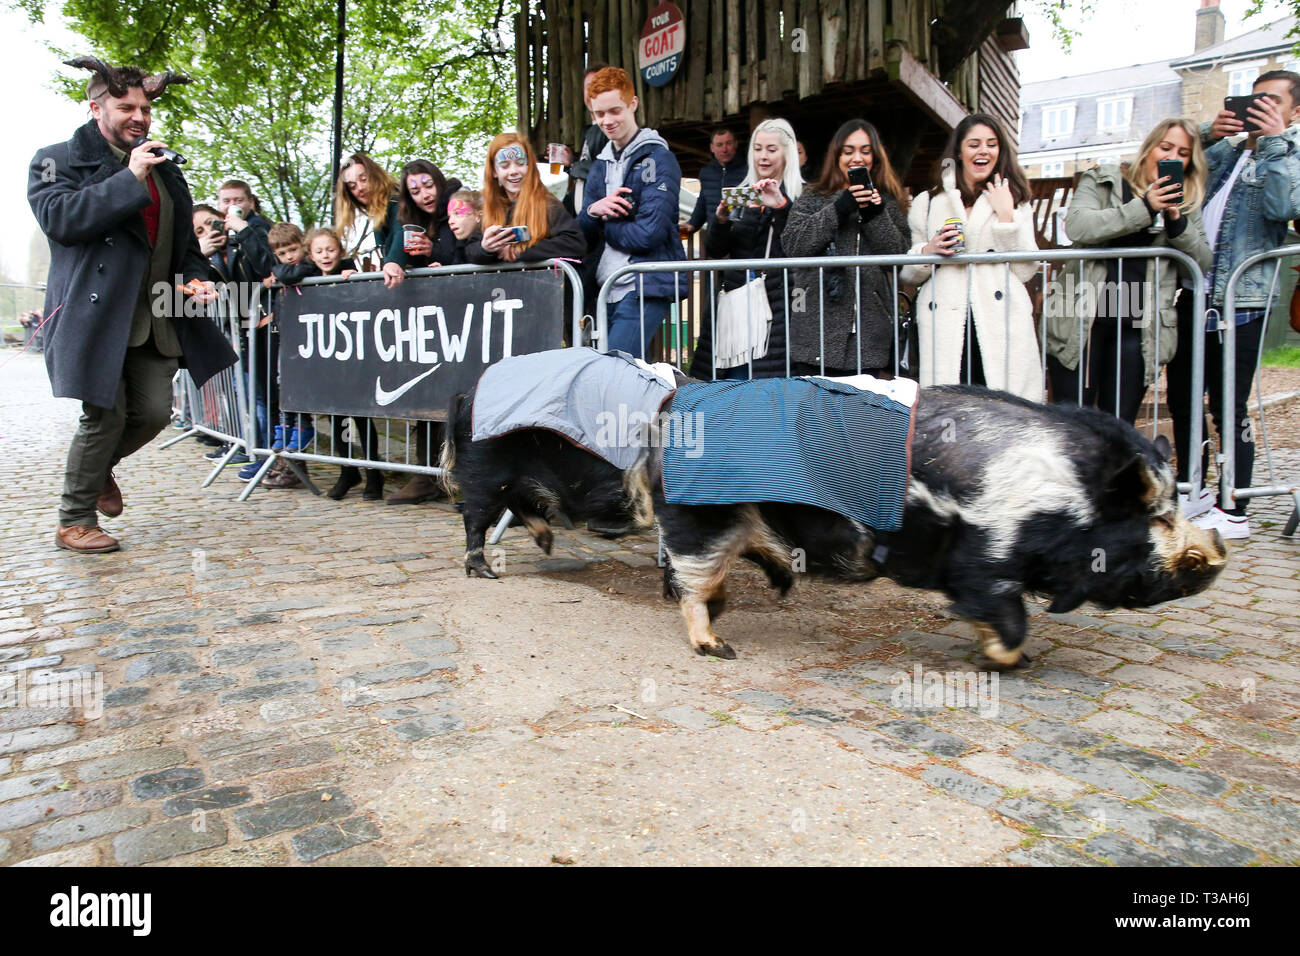 Two pigs are seen taking part in a race before the Oxford vs Cambridge Goat Race in East London. Two pygmy goats compete during the 10th Oxford and Cambridge Goat Race at Spitalfields City Farm, Bethnal Green in East London. The annual fundraising event, which takes place at the same time as the Oxford and Cambridge boat race, where two goats, one named Hamish representing Oxford and the other Hugo representing Cambridge to be crowned King Billy. - Stock Image